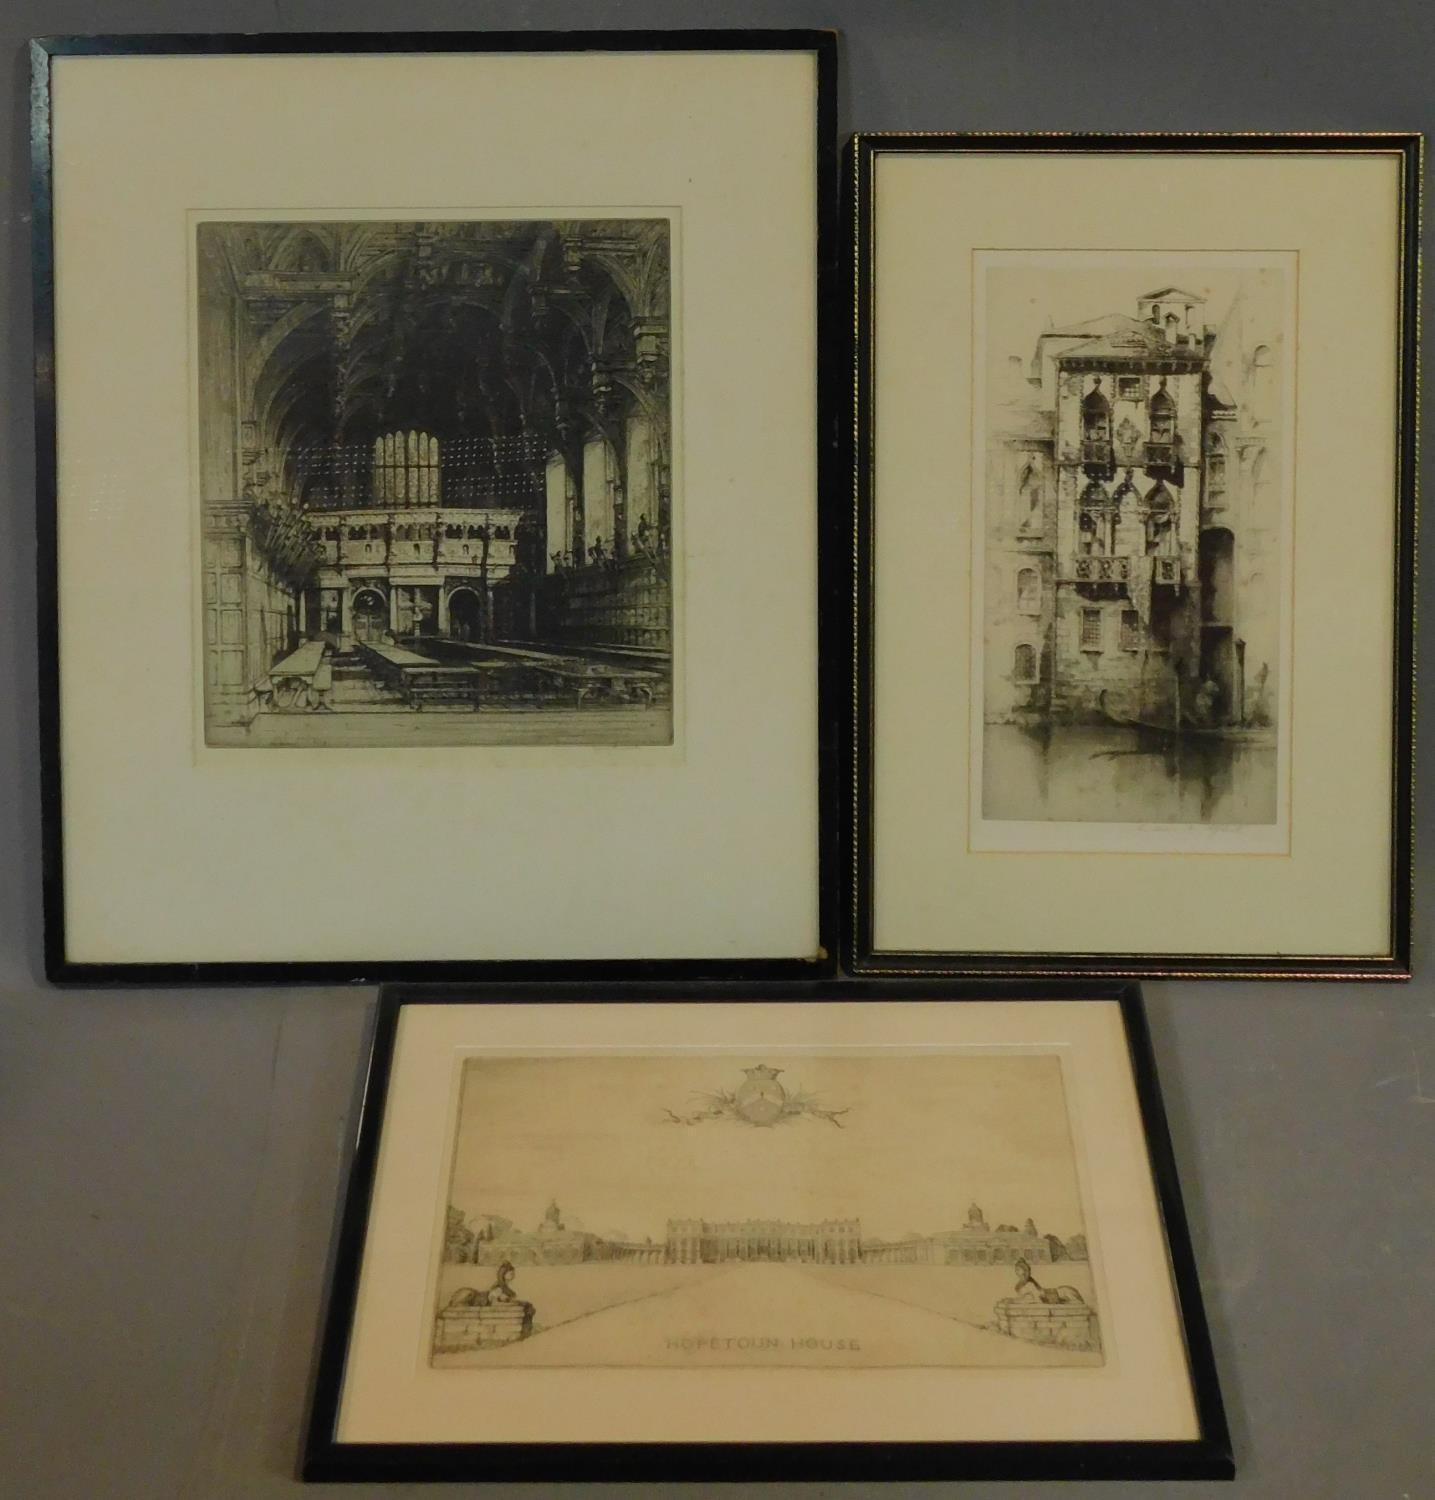 A 19th century signed lithograph of a church interior, another of a Venice canal and a 19th